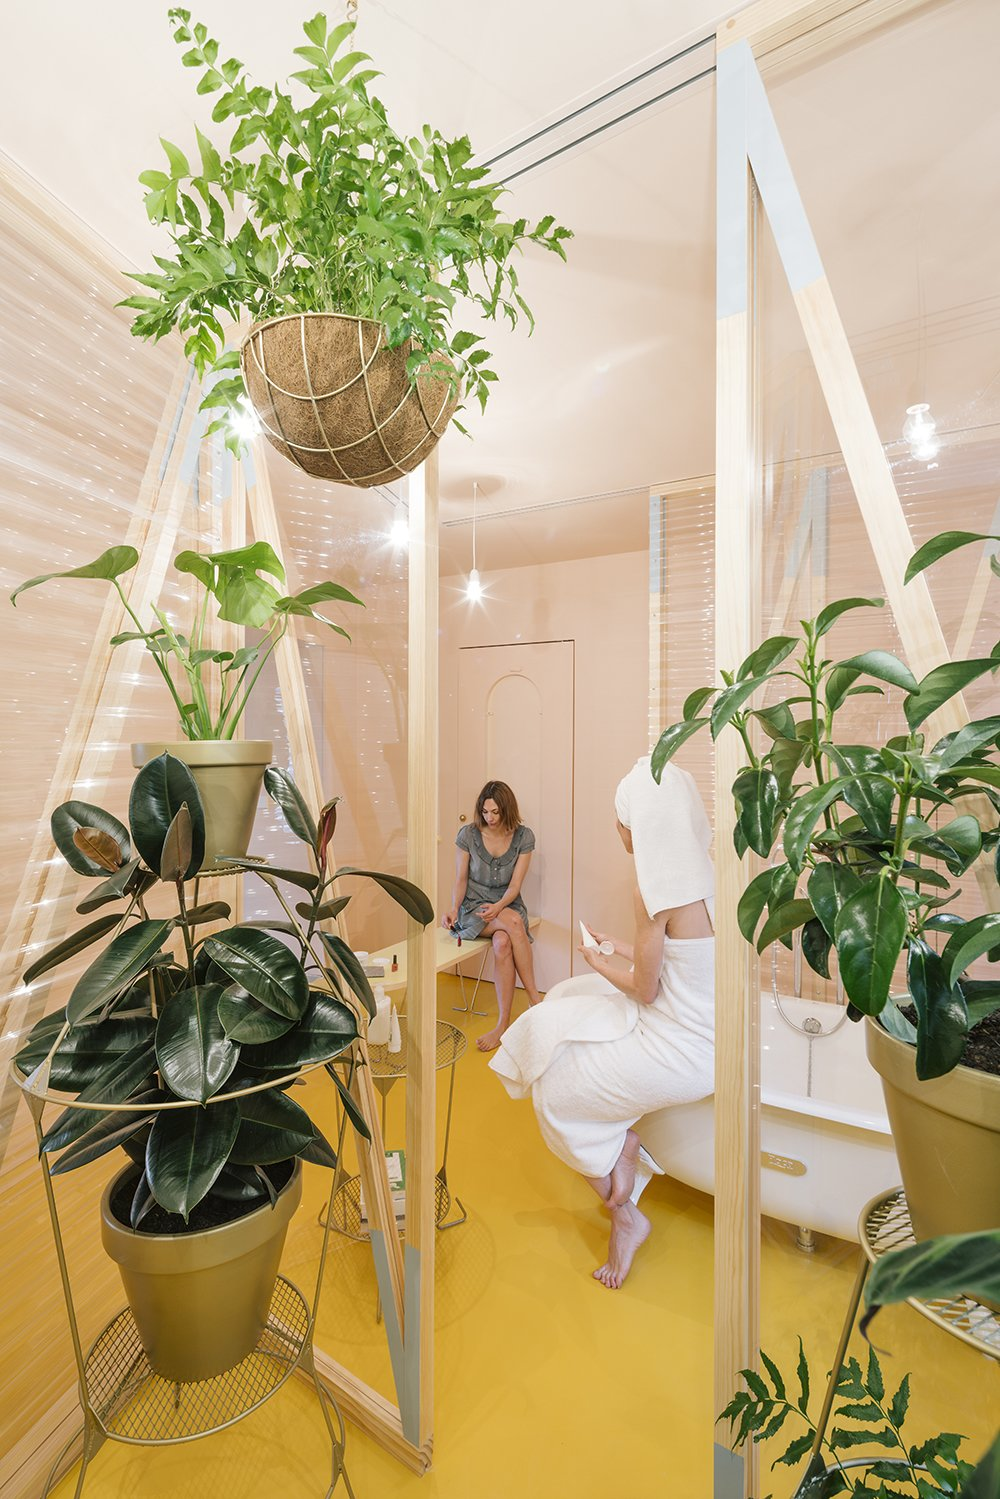 A canary yellow–floored bathroom with corrugated plastic walls is the centerpiece of the renovation.  Photo 2 of 7 in A Quirky Renovation Brings an Indoor Garden to the Center of Madrid